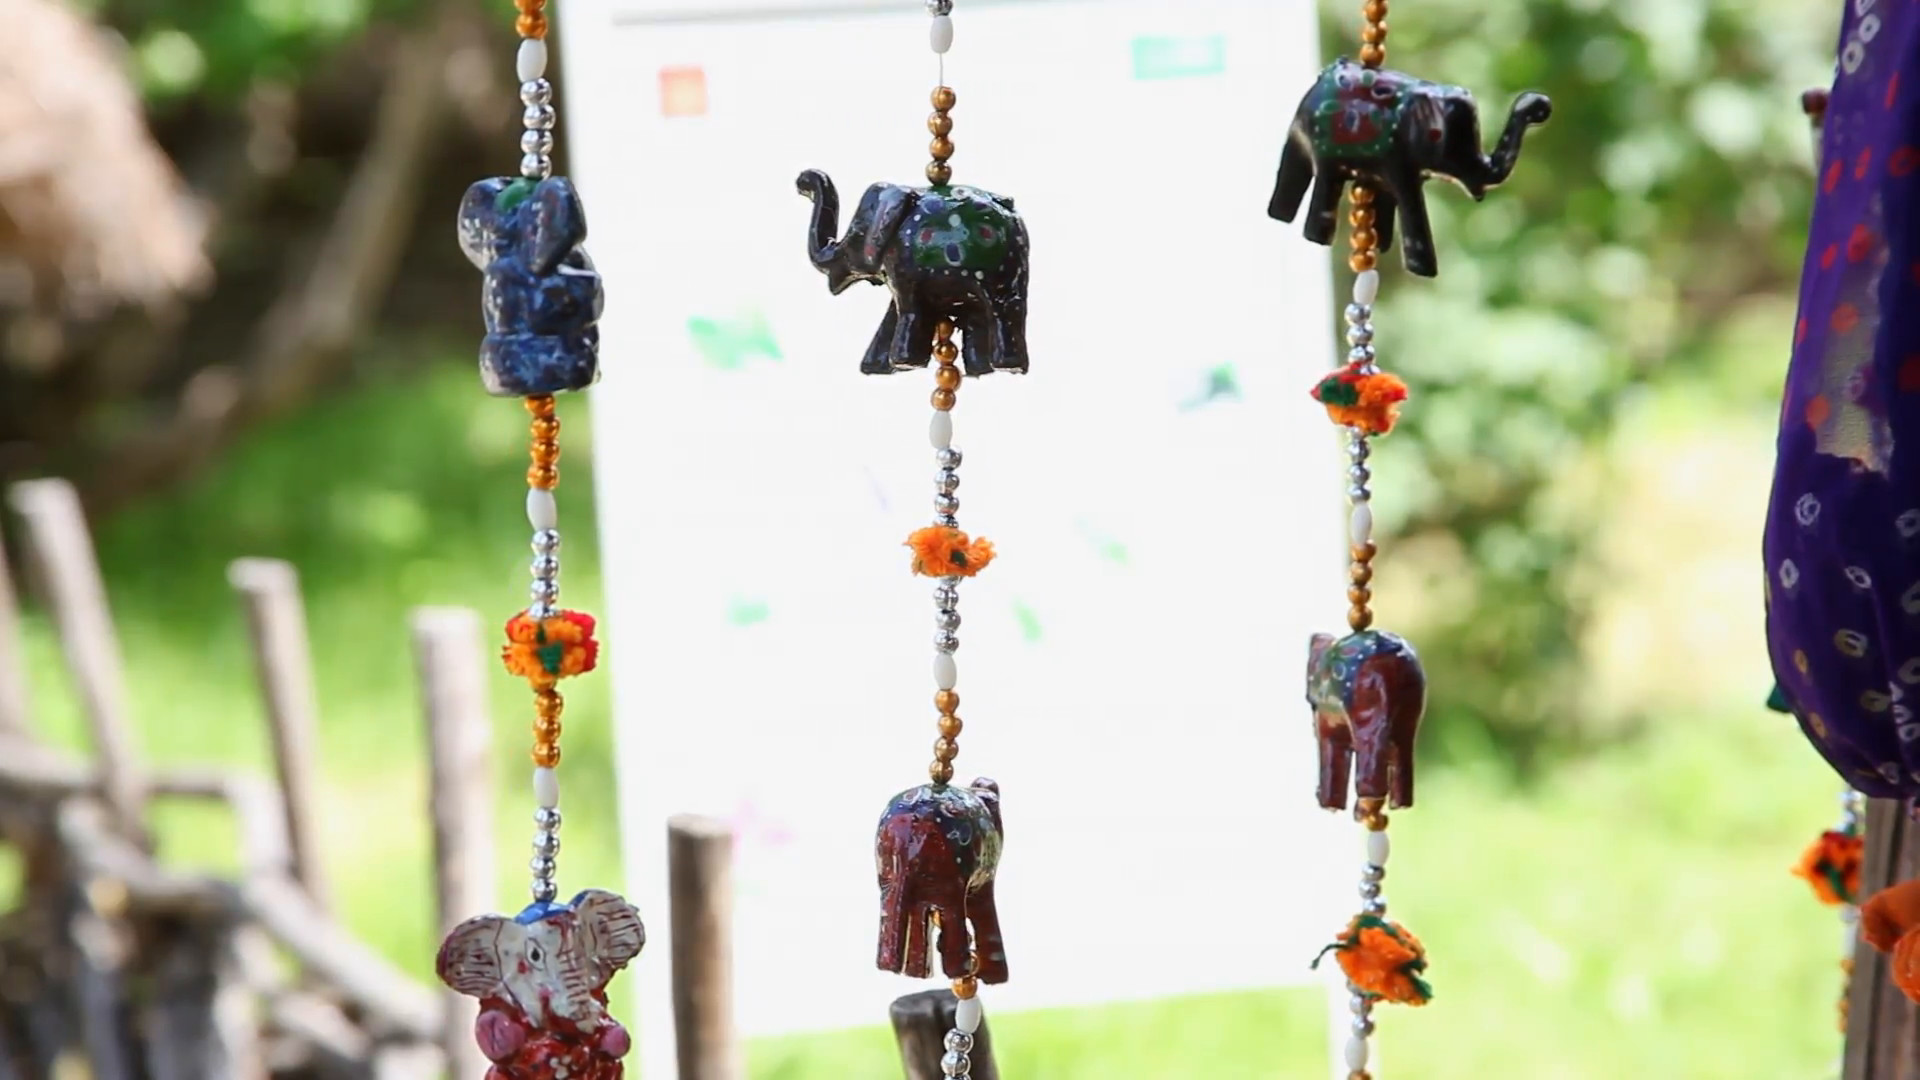 Res: 1920x1080, Elephant and beads good luck charm, amulet, Feng Shui, figurine, wind  chimes Stock Video Footage - Videoblocks